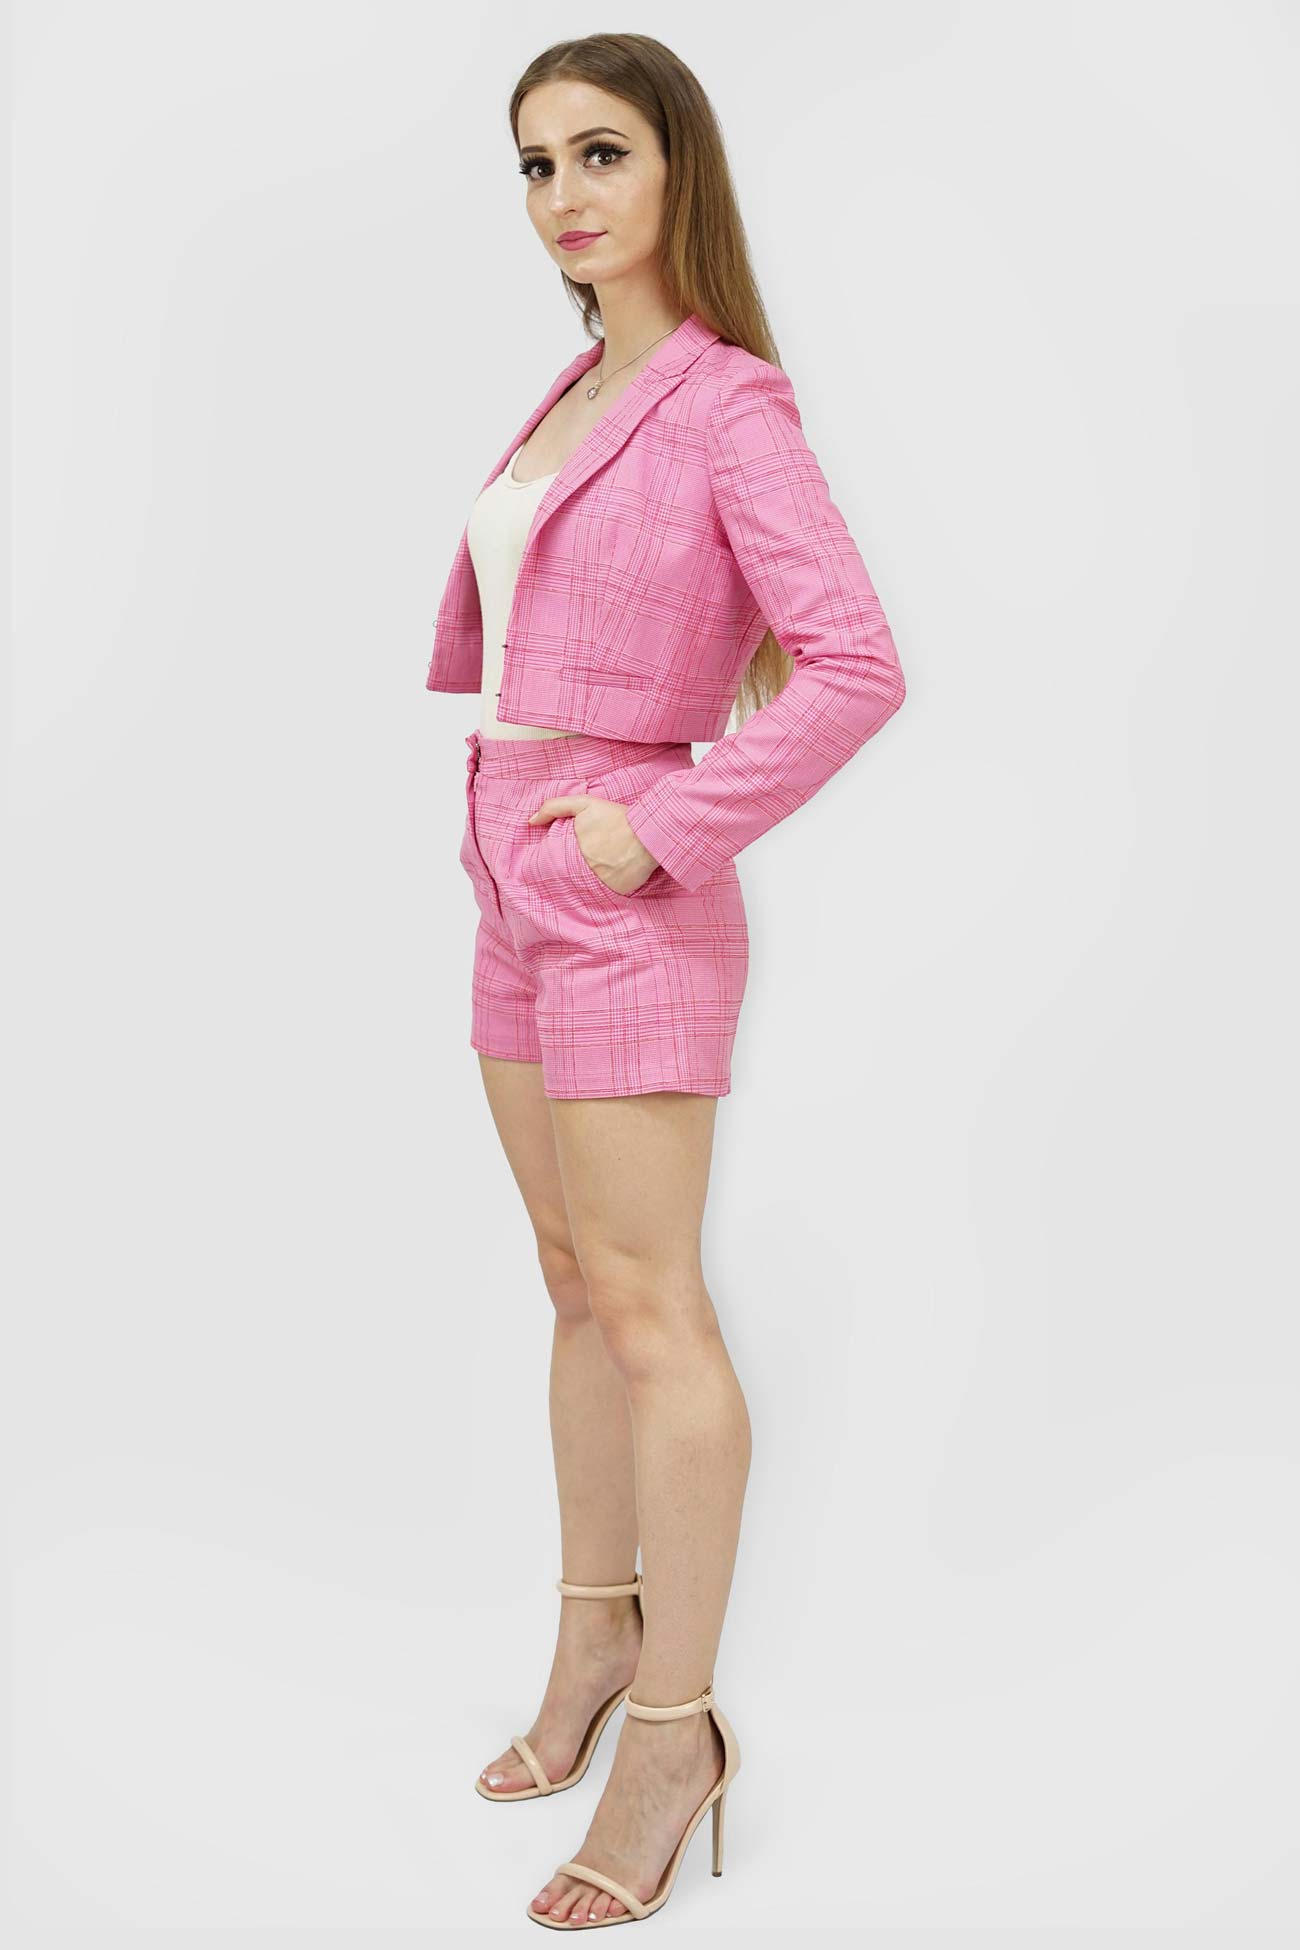 Women's Suits | Pixie Suit_2 | Style & Suit